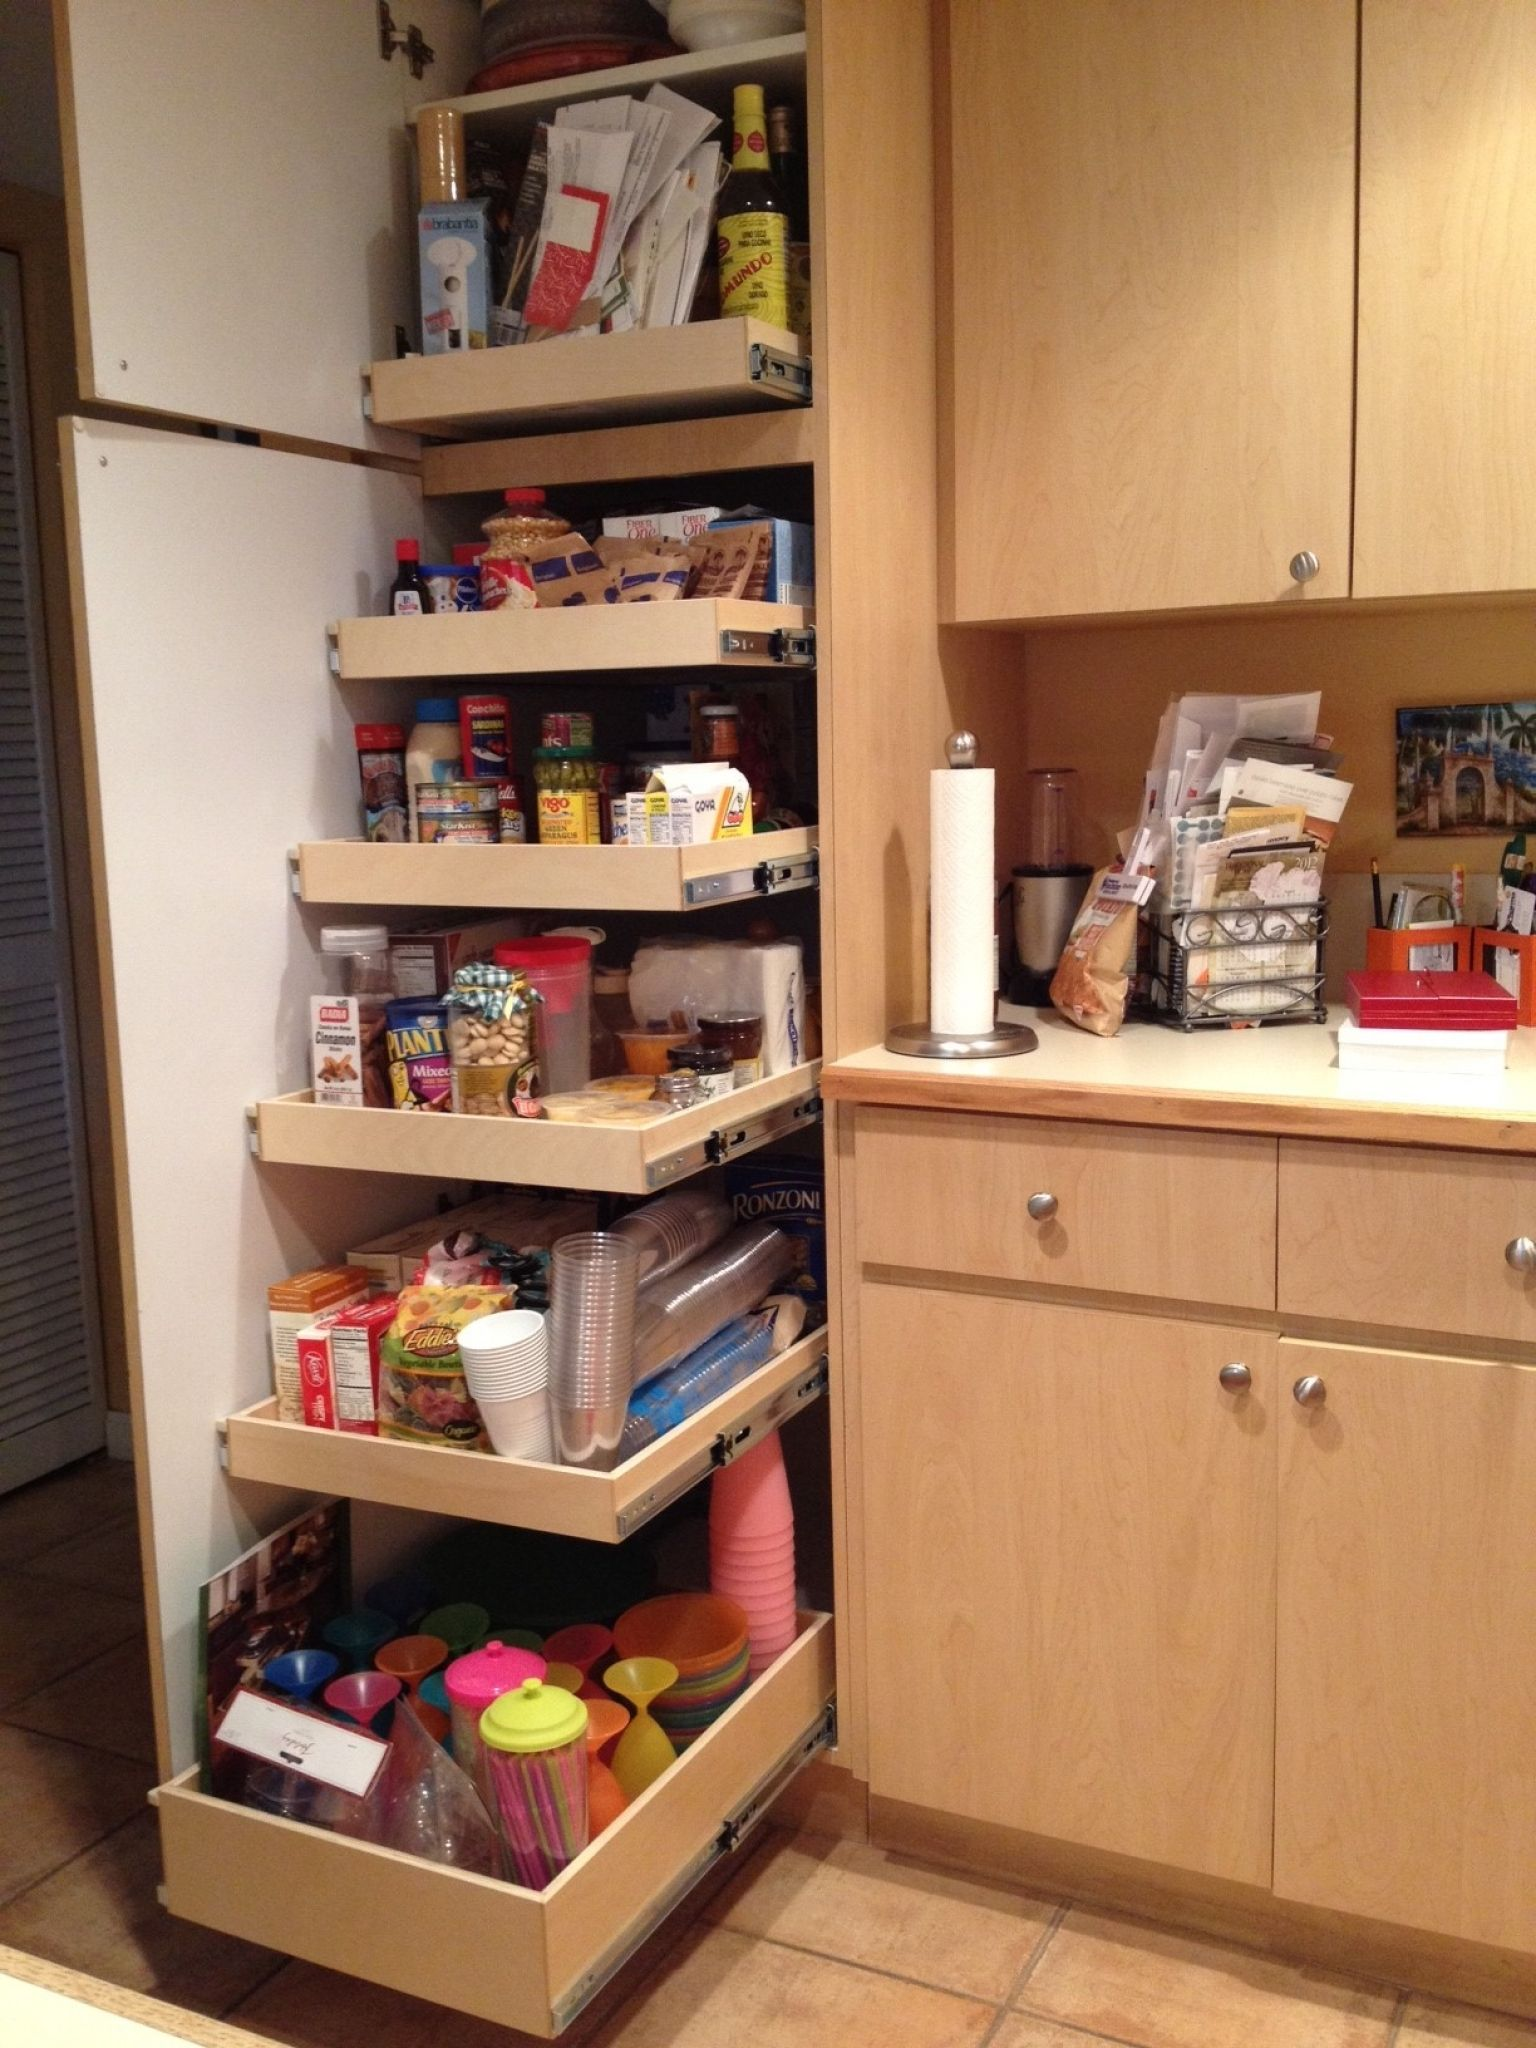 Ordinaire Narrow Kitchen Pantry Cabinet   Small Kitchen Pantry Ideas Check More At  Http://